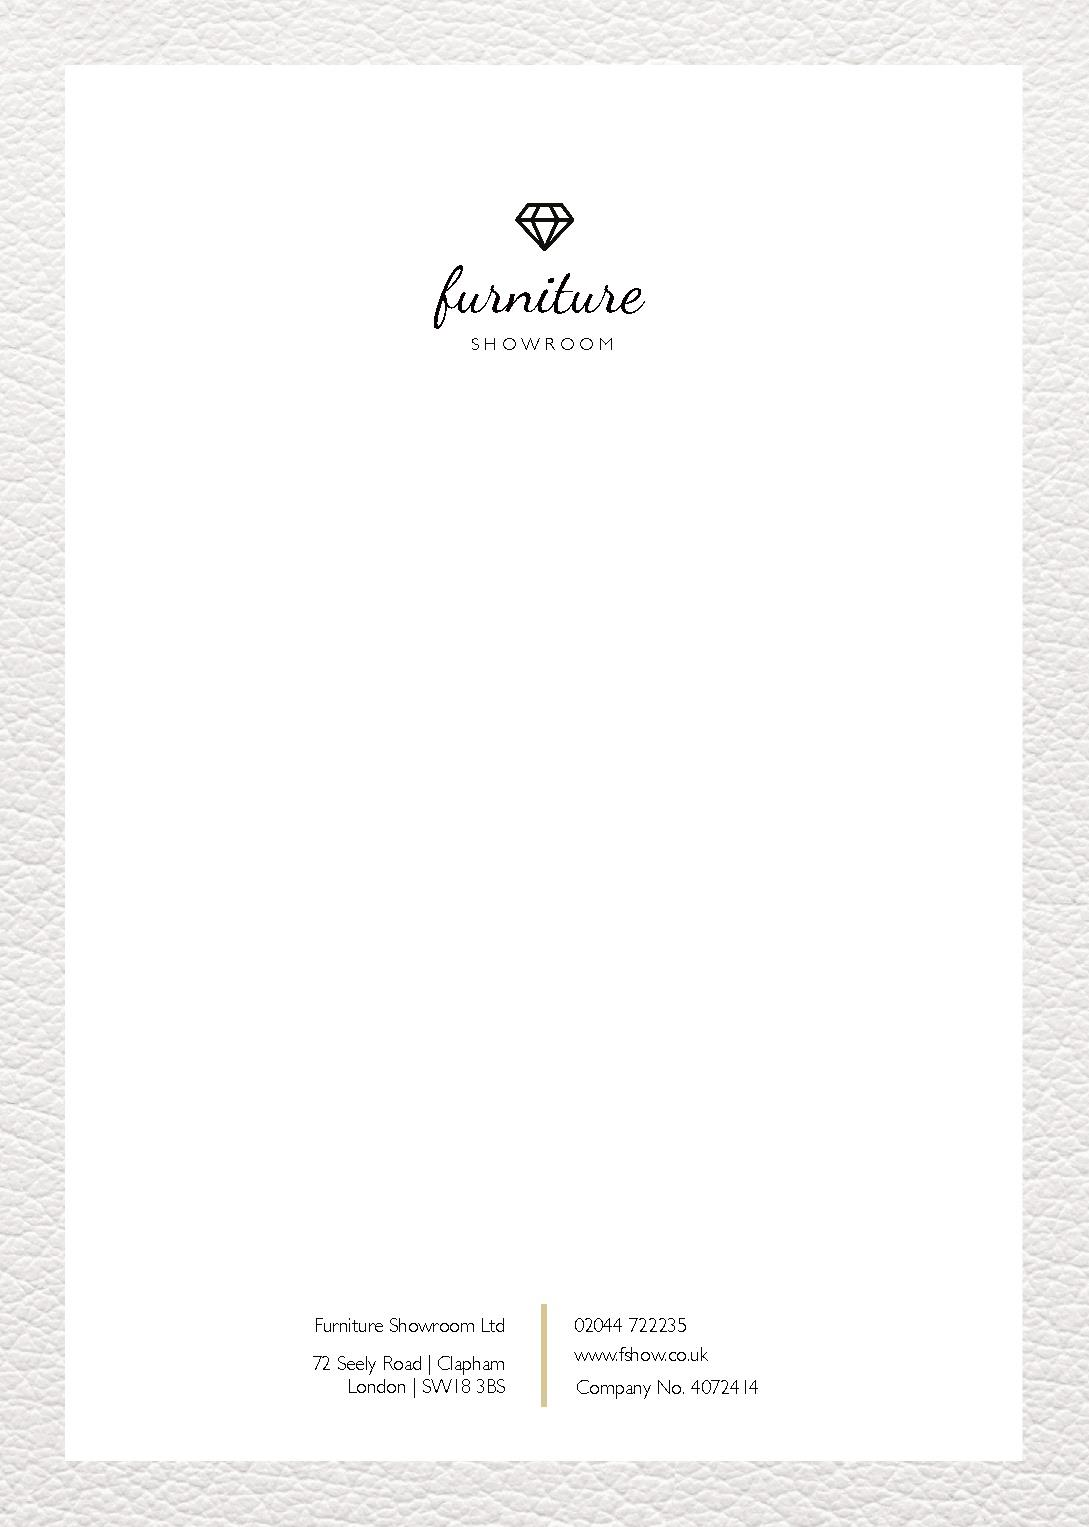 Company letterhead template word download uk company letterhead.